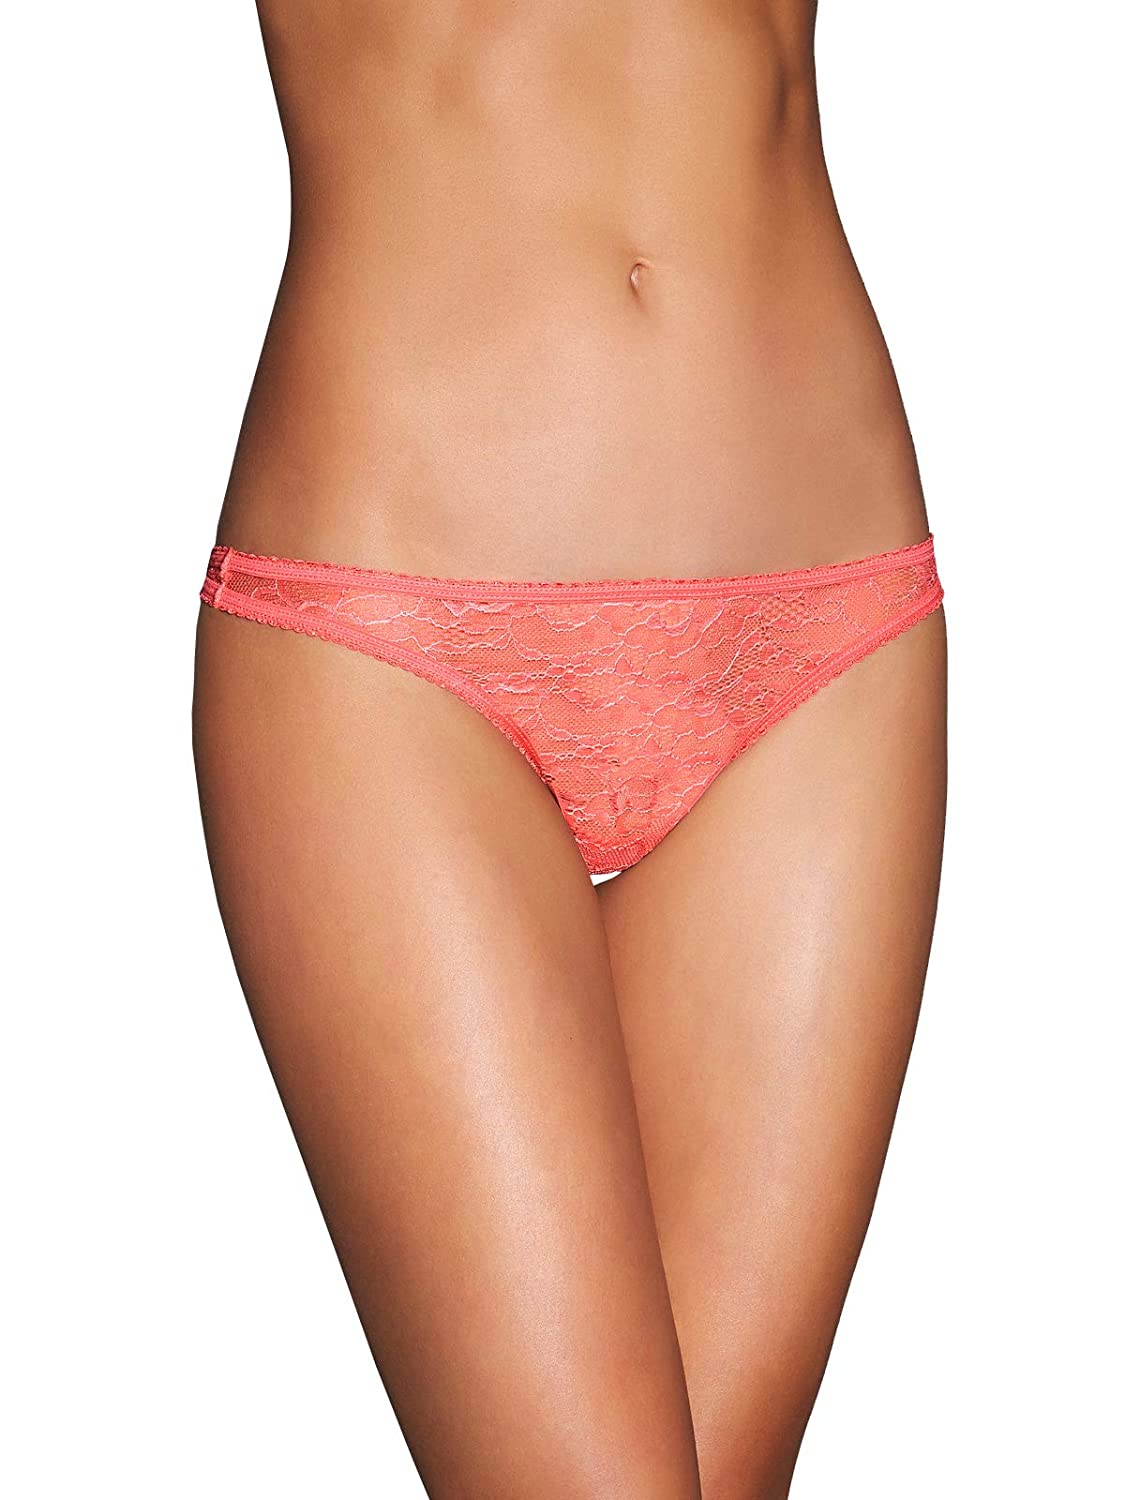 e04bd53f6836 Frederick's Of Hollywood Women's Lace Thong Panties - Ladies Sexy Lingerie  at Amazon Women's Clothing store: